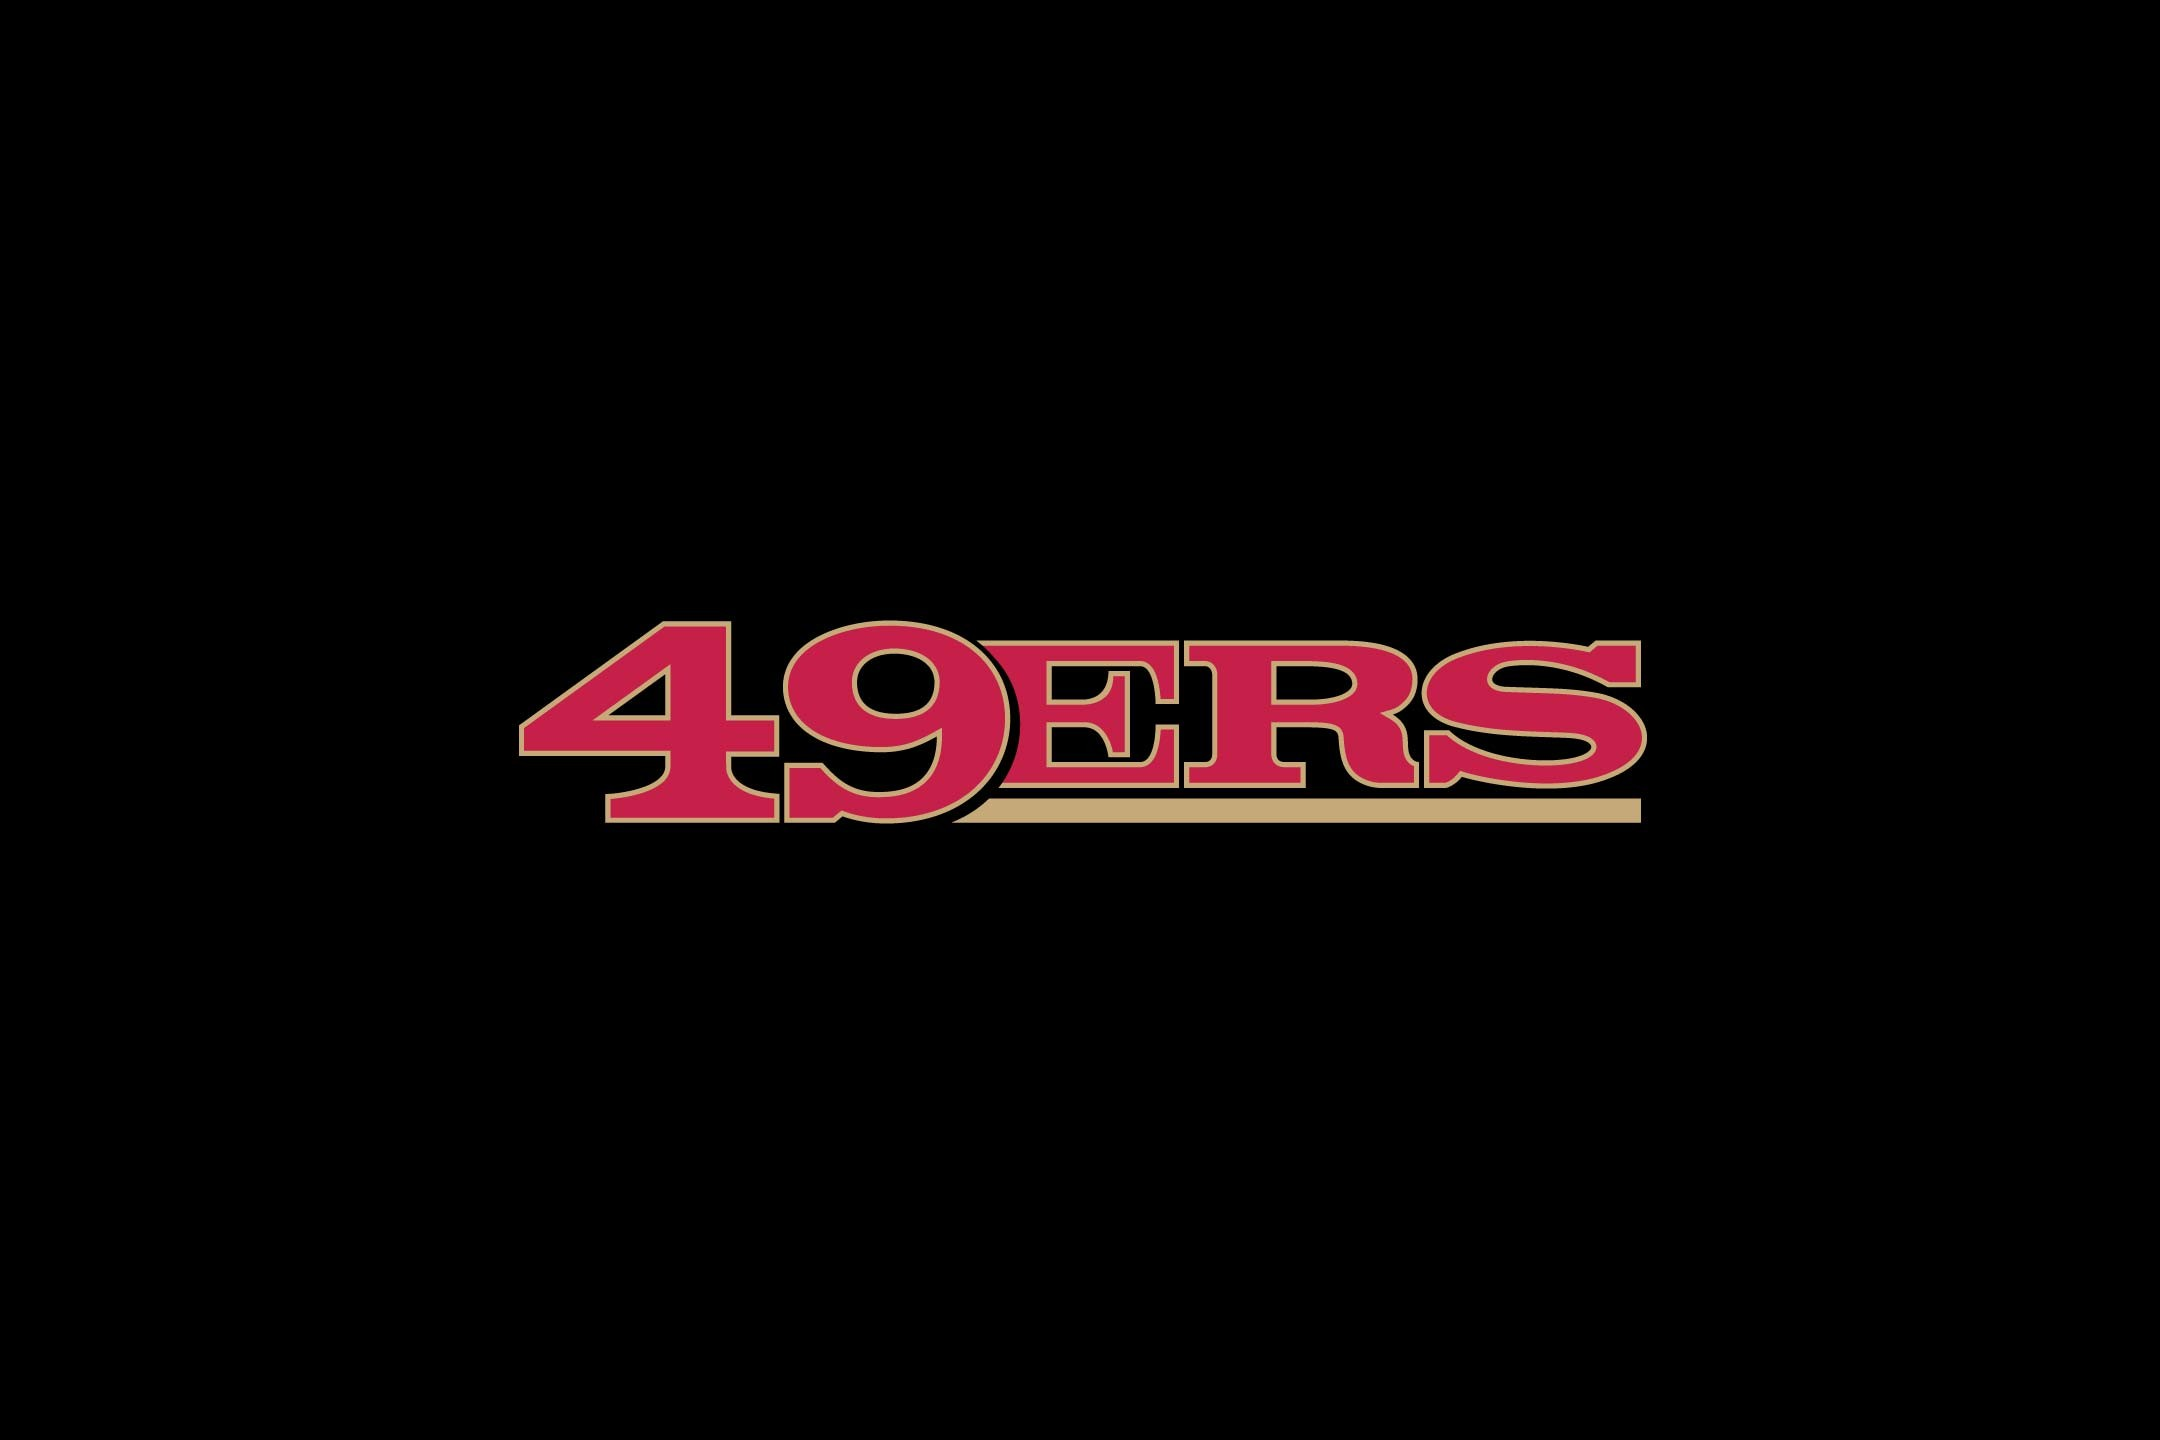 2160x1440 49ers Wallpapers For Android - Wallpaper Zone